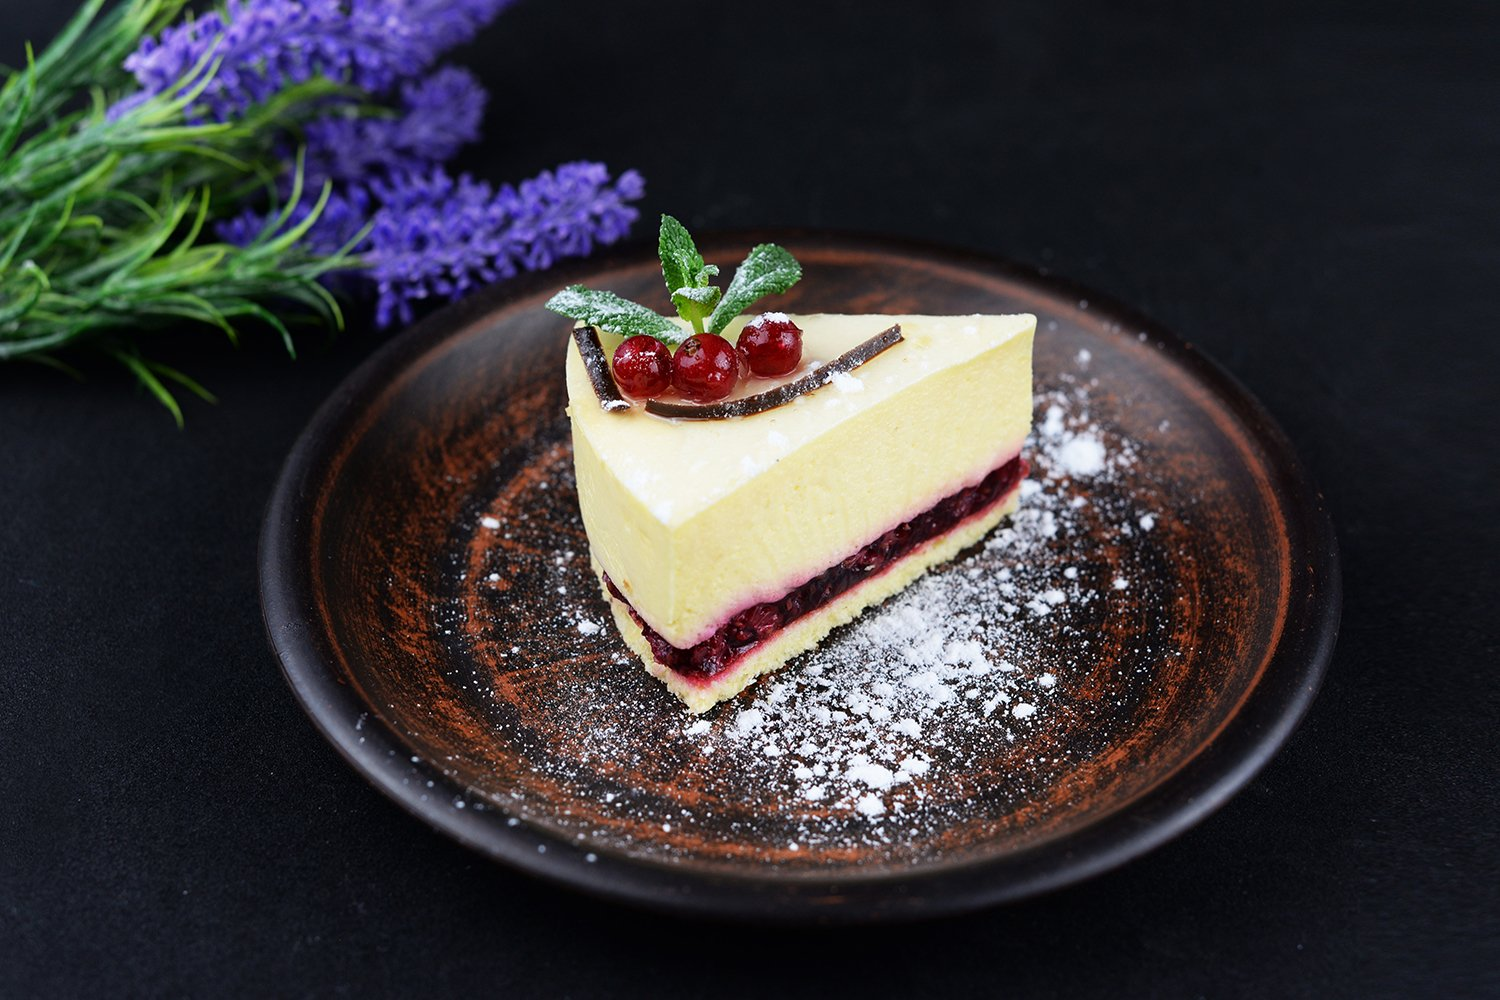 dessert cheesecake with mint and berries example image 1